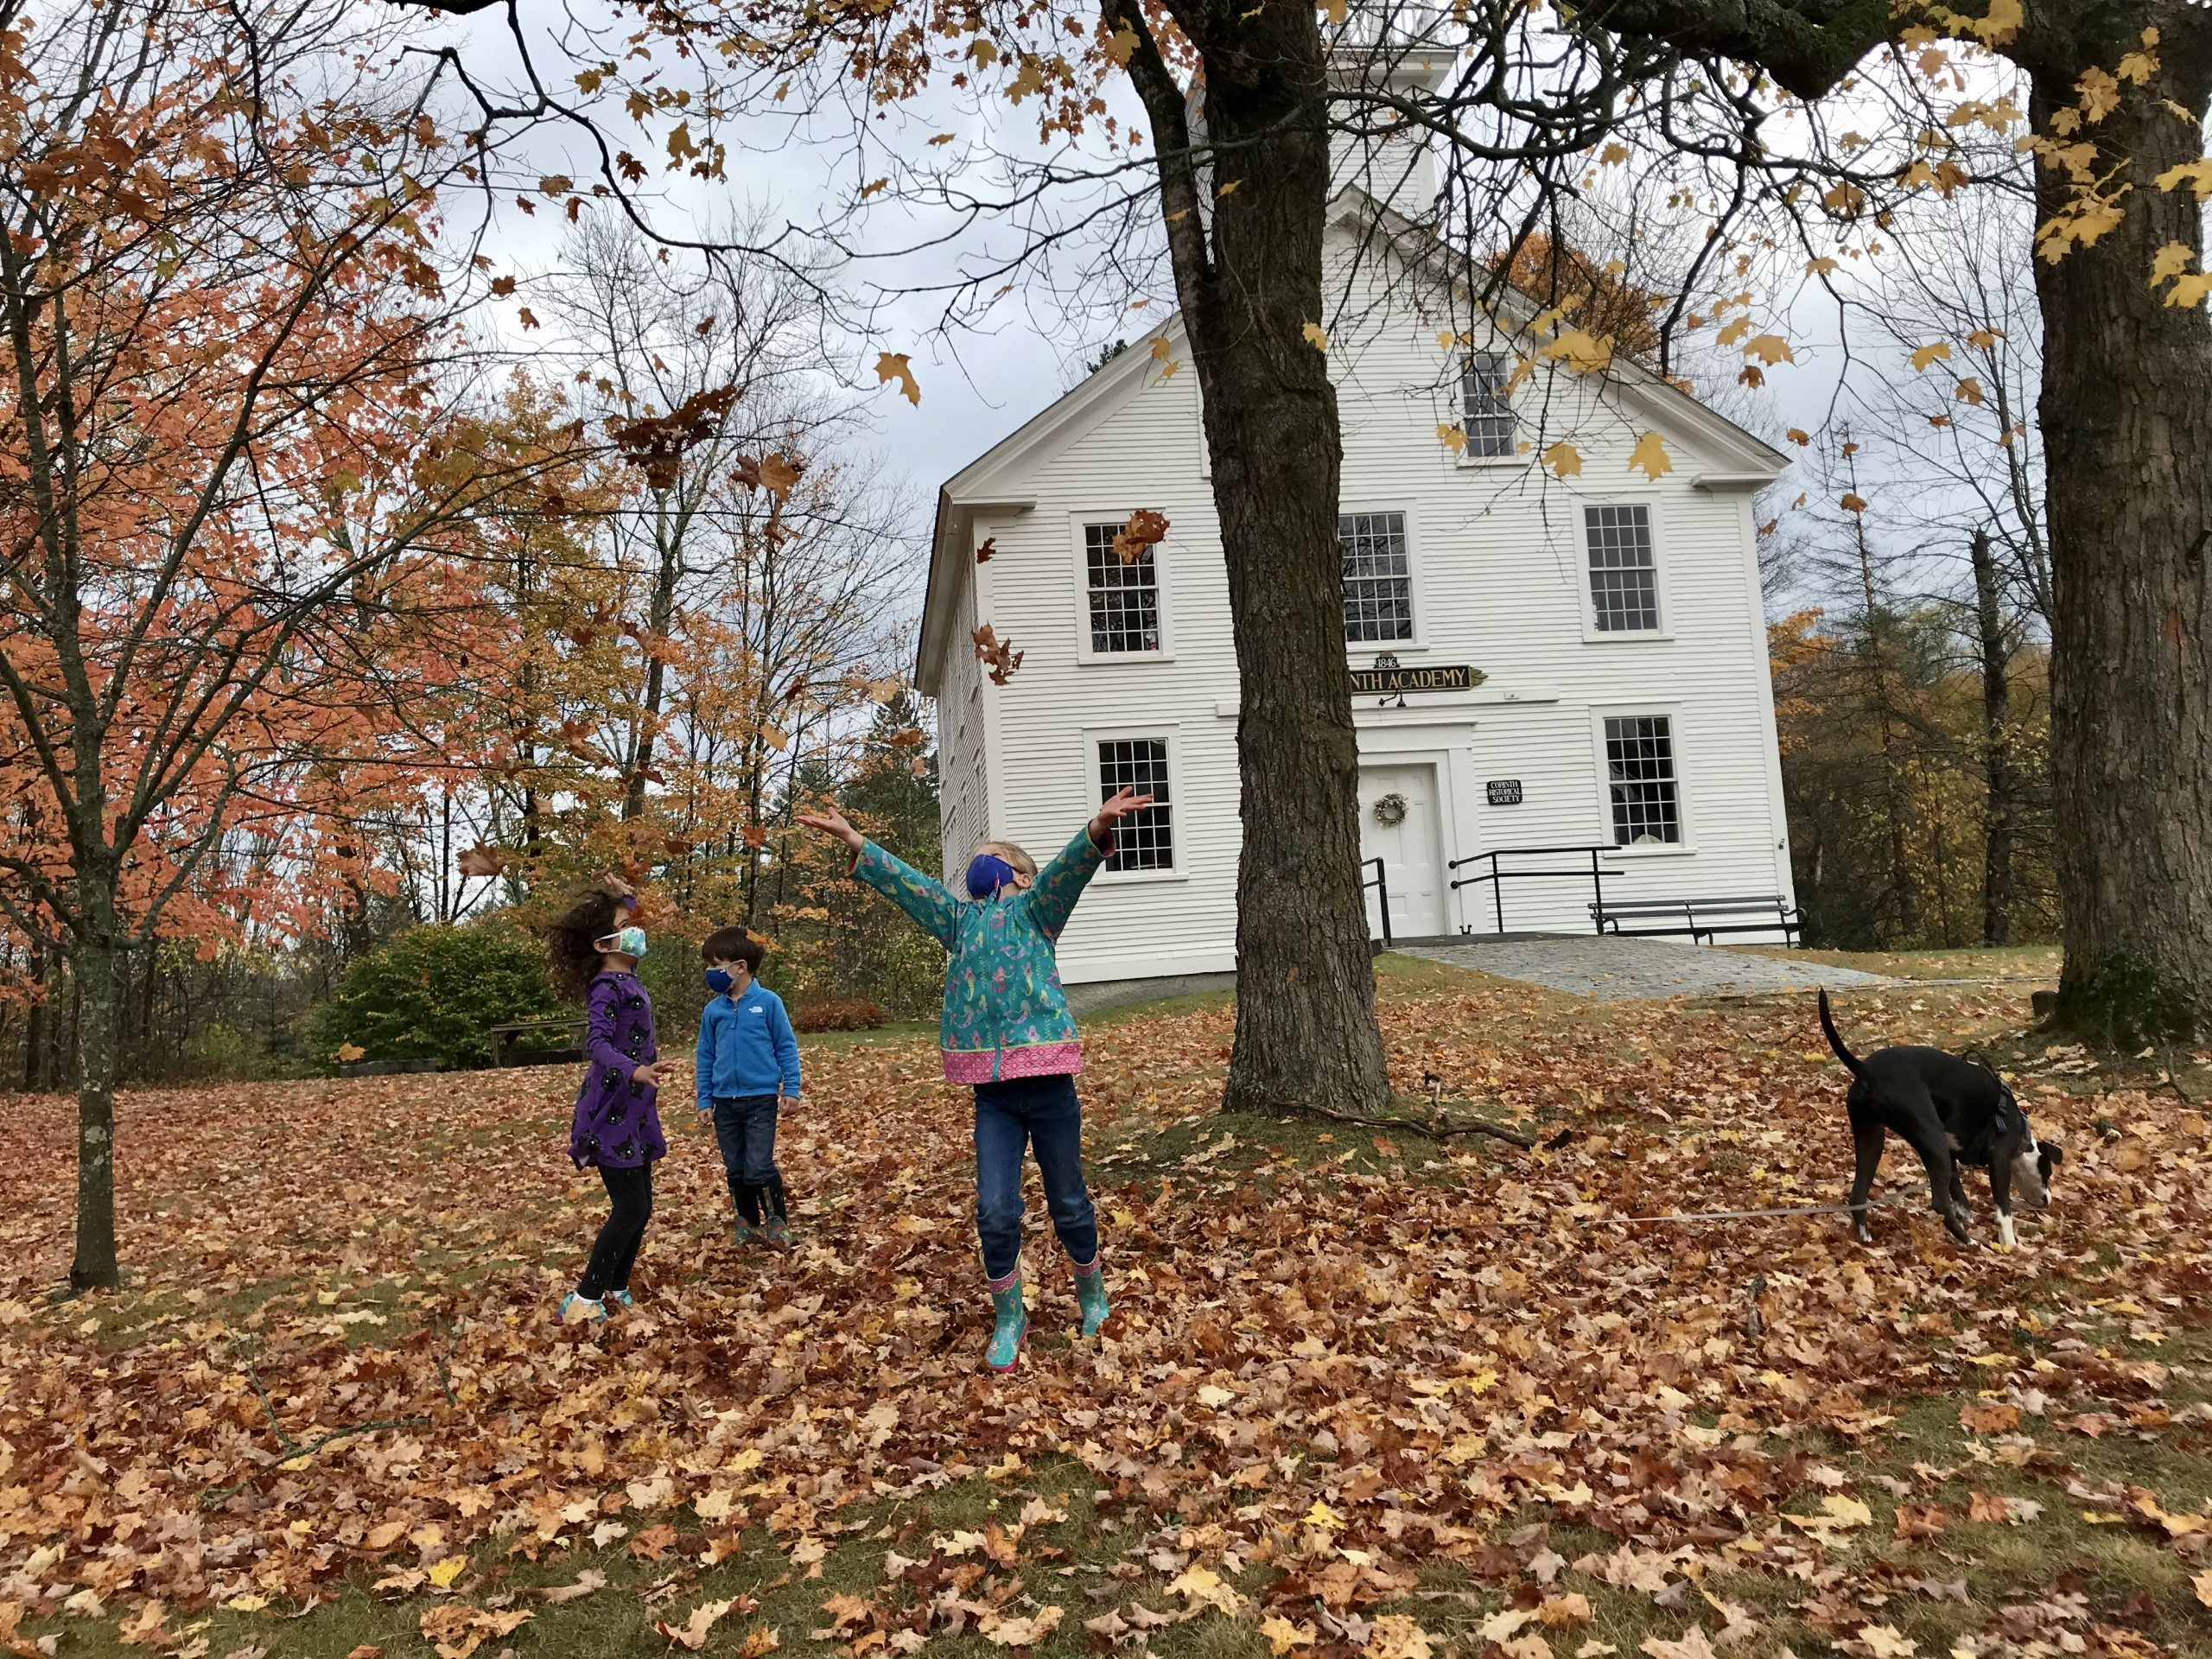 Contest Entry #11 - Excited for Fall - 3 children and a dog playing in the leaves in front of the Corinth, VT Academy Building